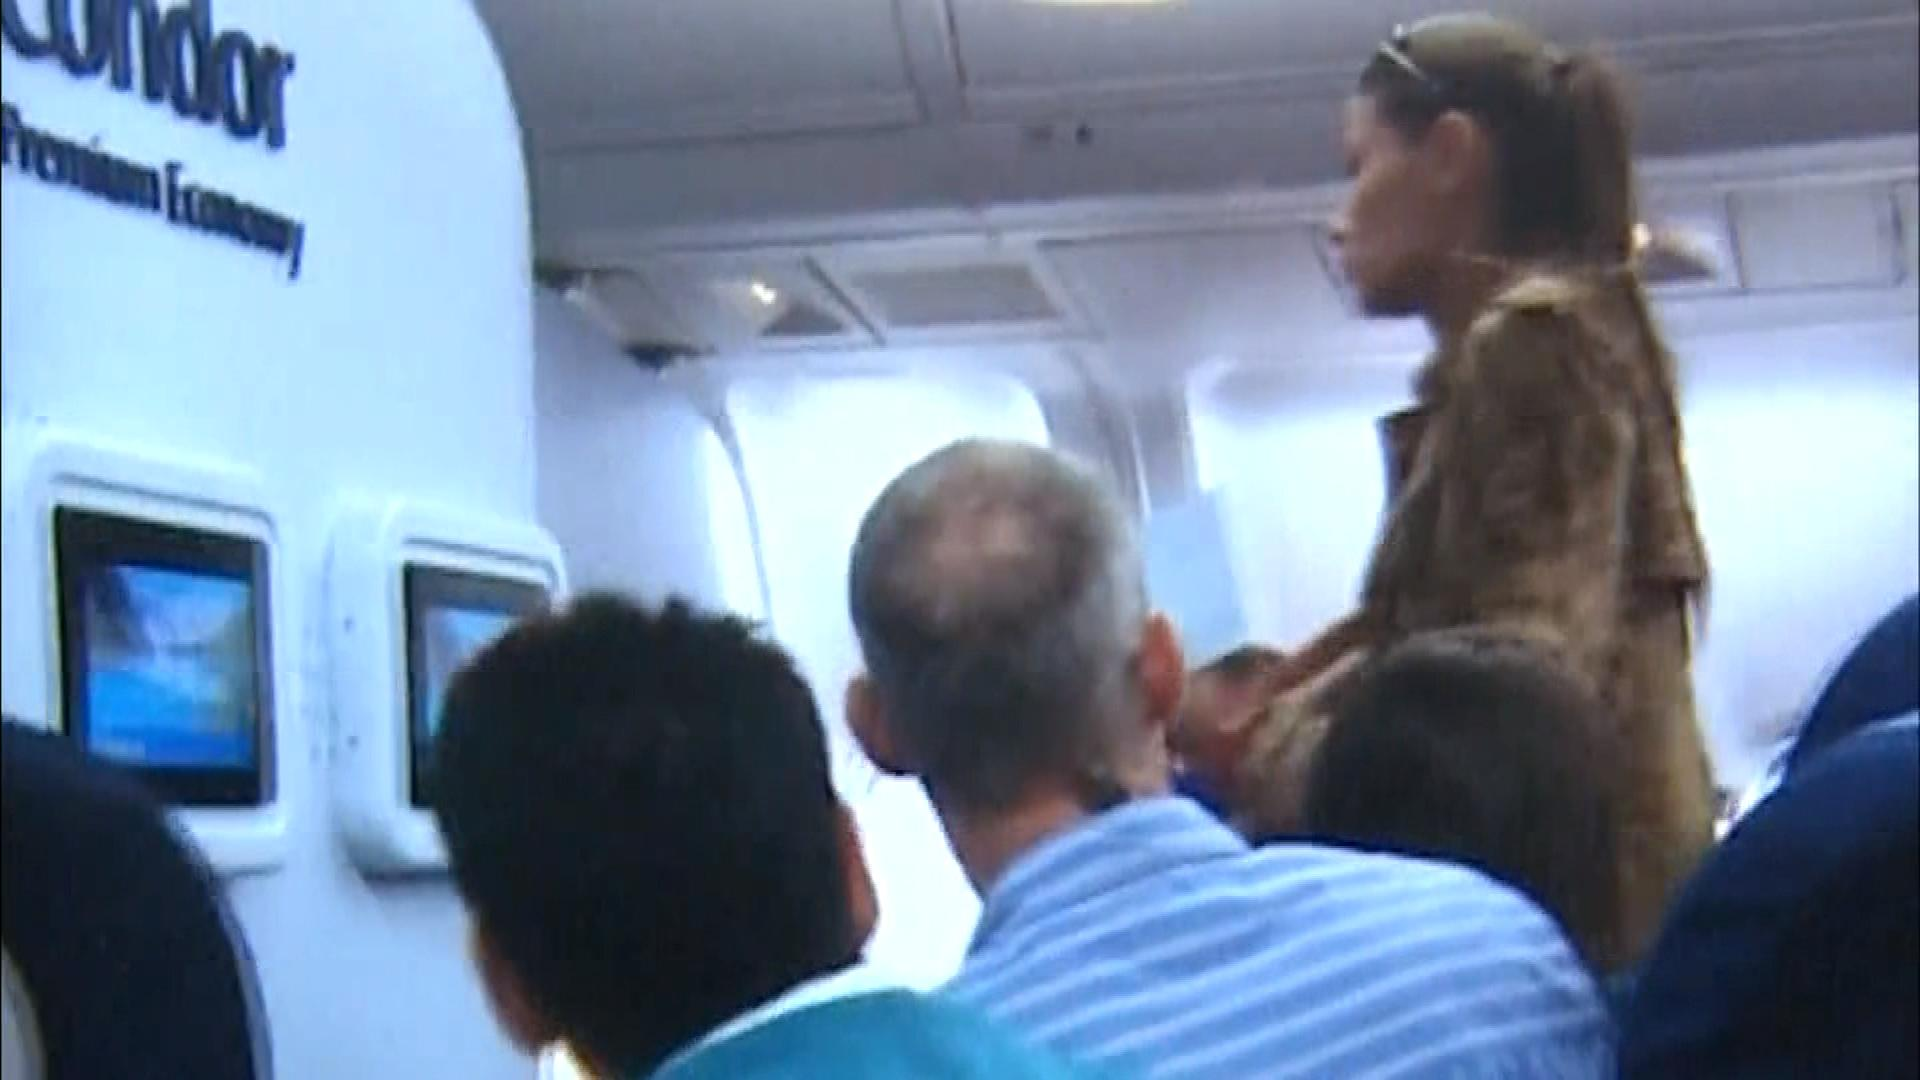 The woman on the Condor Airlines flight (credit: CBS)